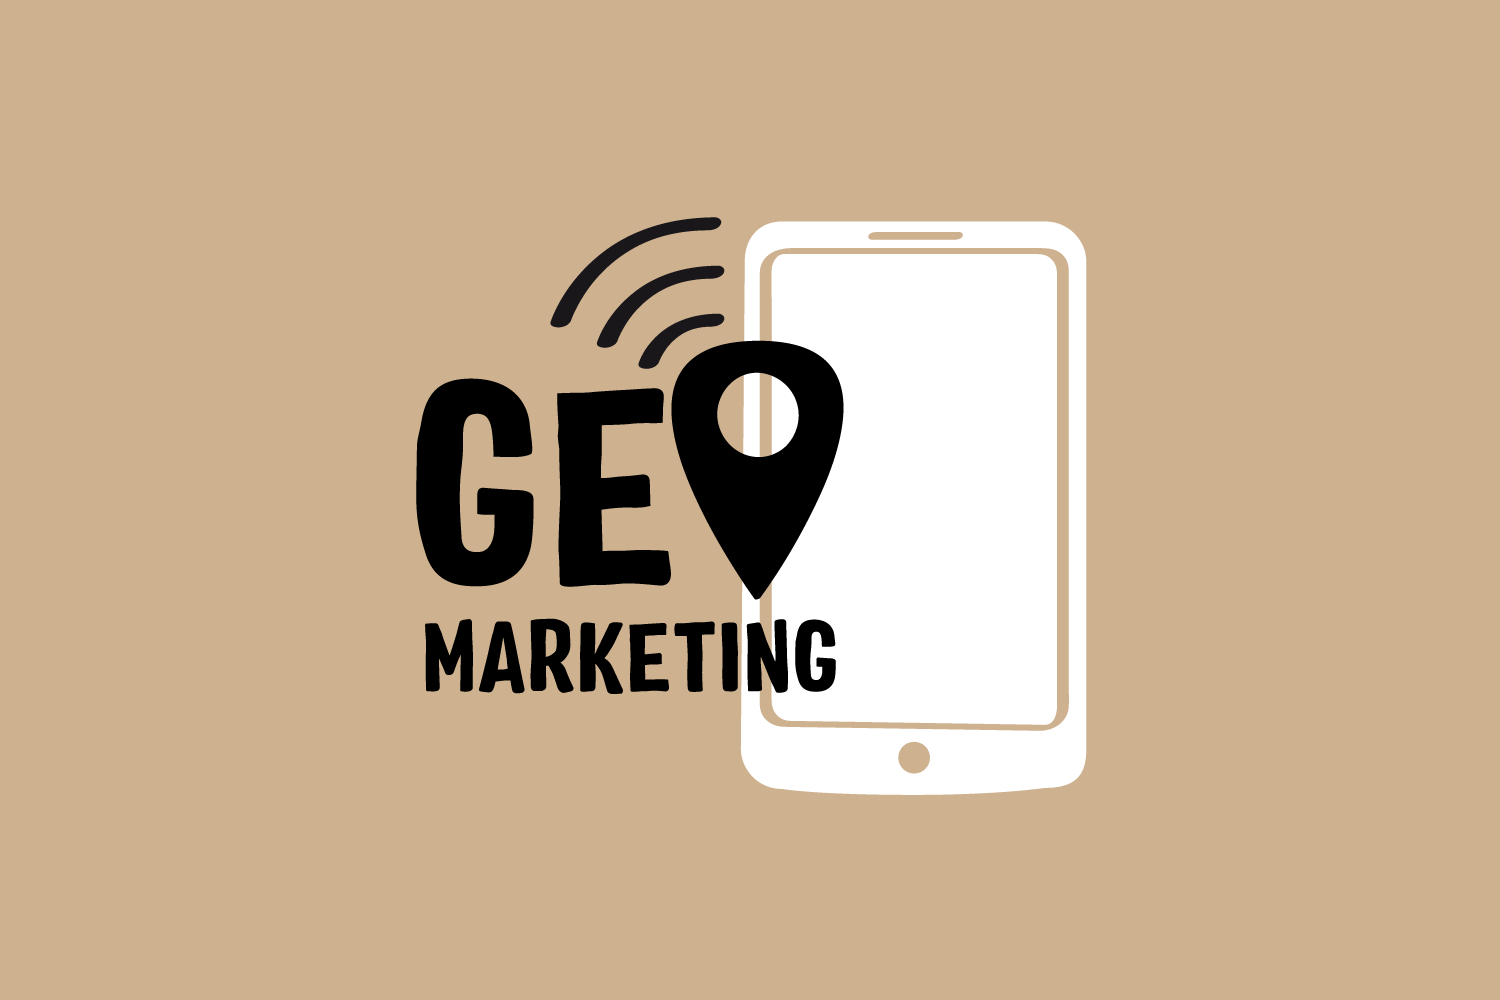 moinmarco_story-marketing-blog_geo-marketing.png